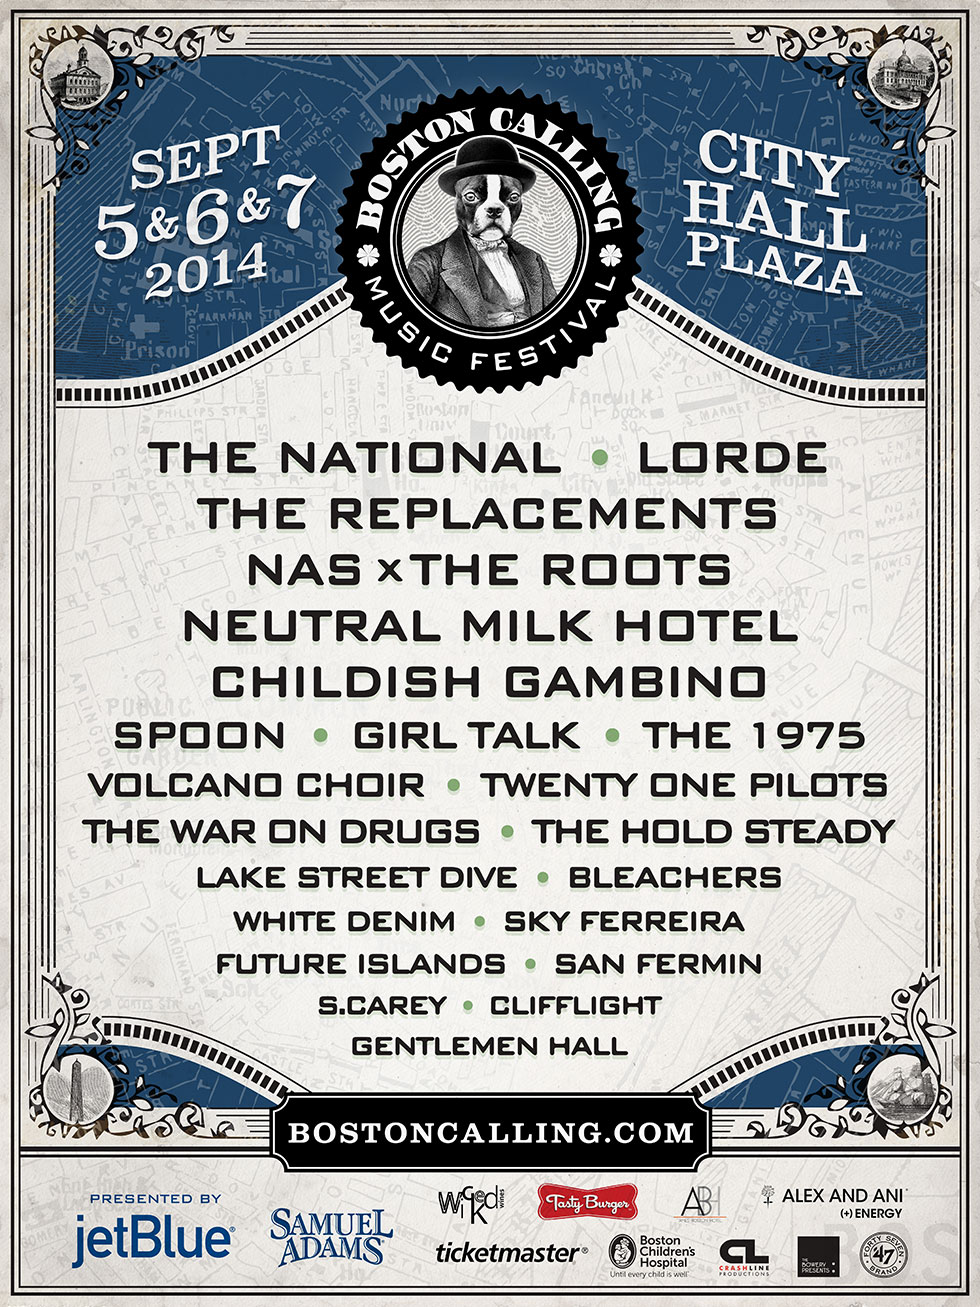 Boston Calling September 2014 Lineup